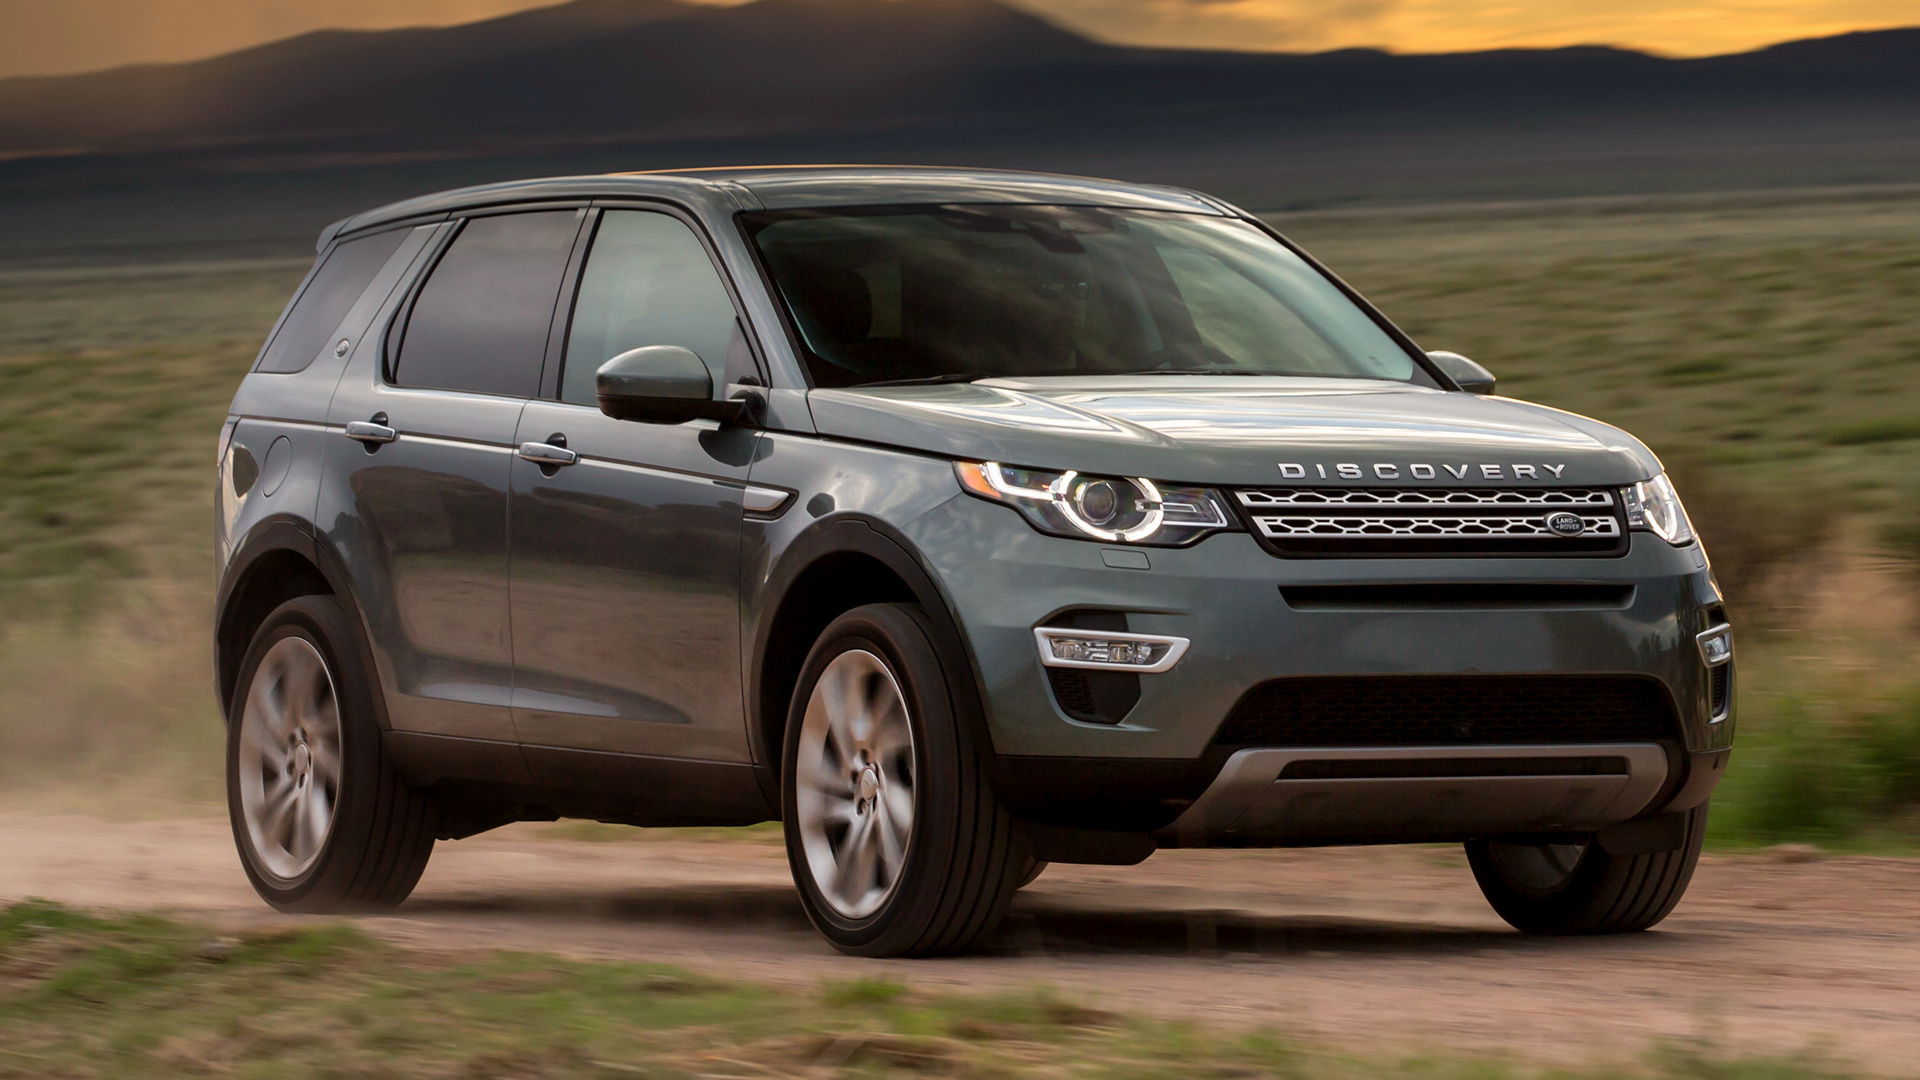 land rover discovery sport hse luxury 2015 wallpapers and. Black Bedroom Furniture Sets. Home Design Ideas